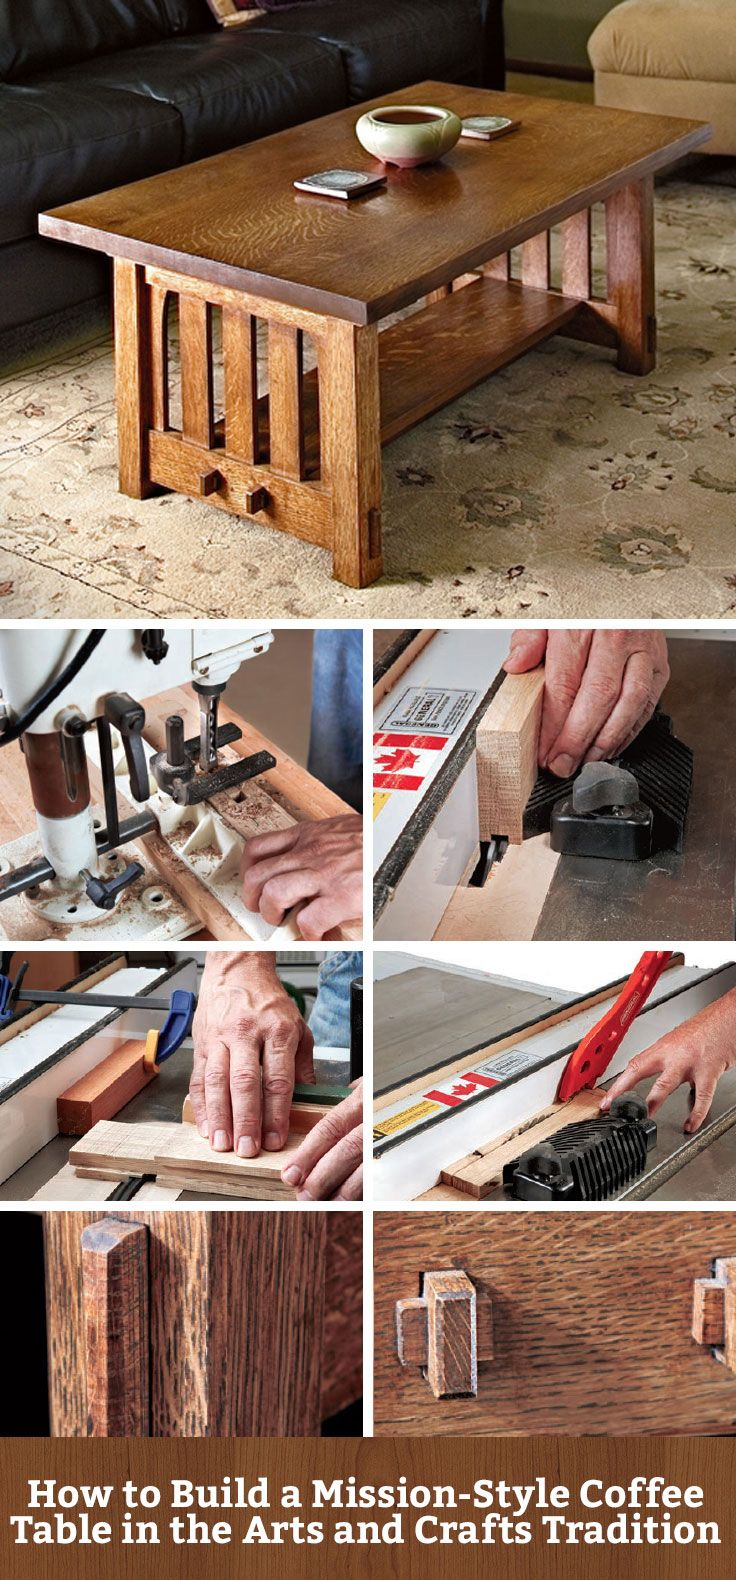 The through tenon is my favorite part